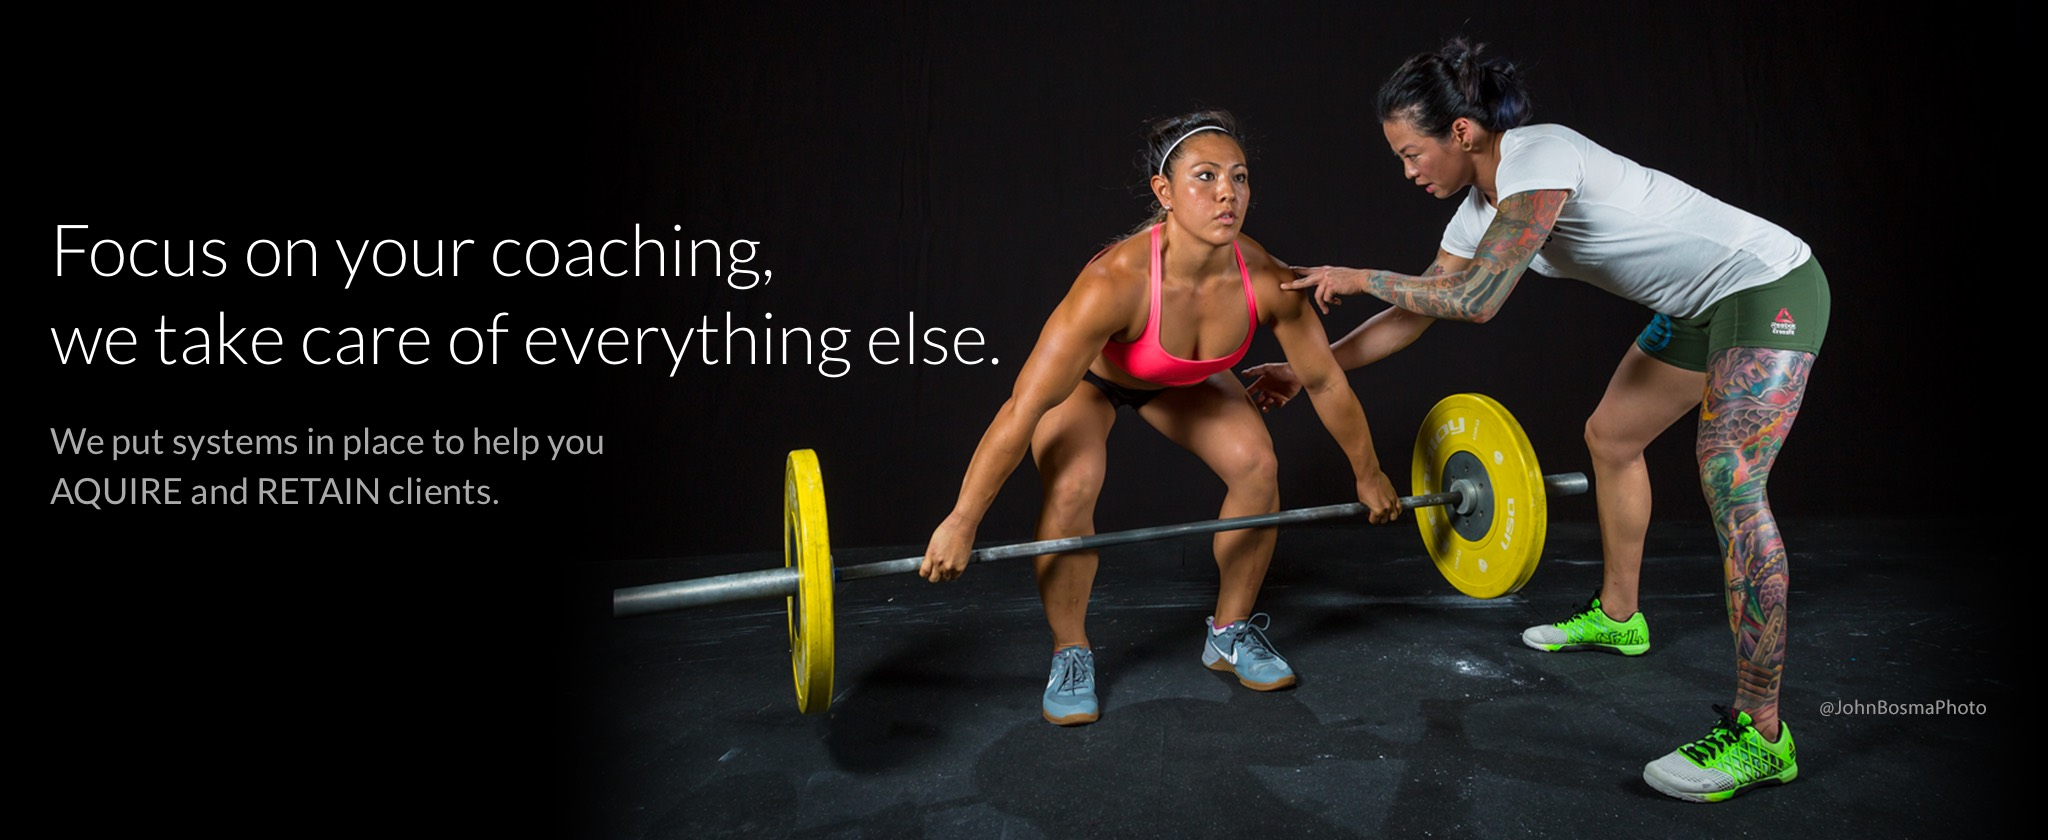 Diane Fu (Fubarbell and San Francisco CrossFit) and Jamie Hagiya (CrossFit Games Regionals Athlete and Owner of Torrance CrossFit) are two happy PushPress Clients.